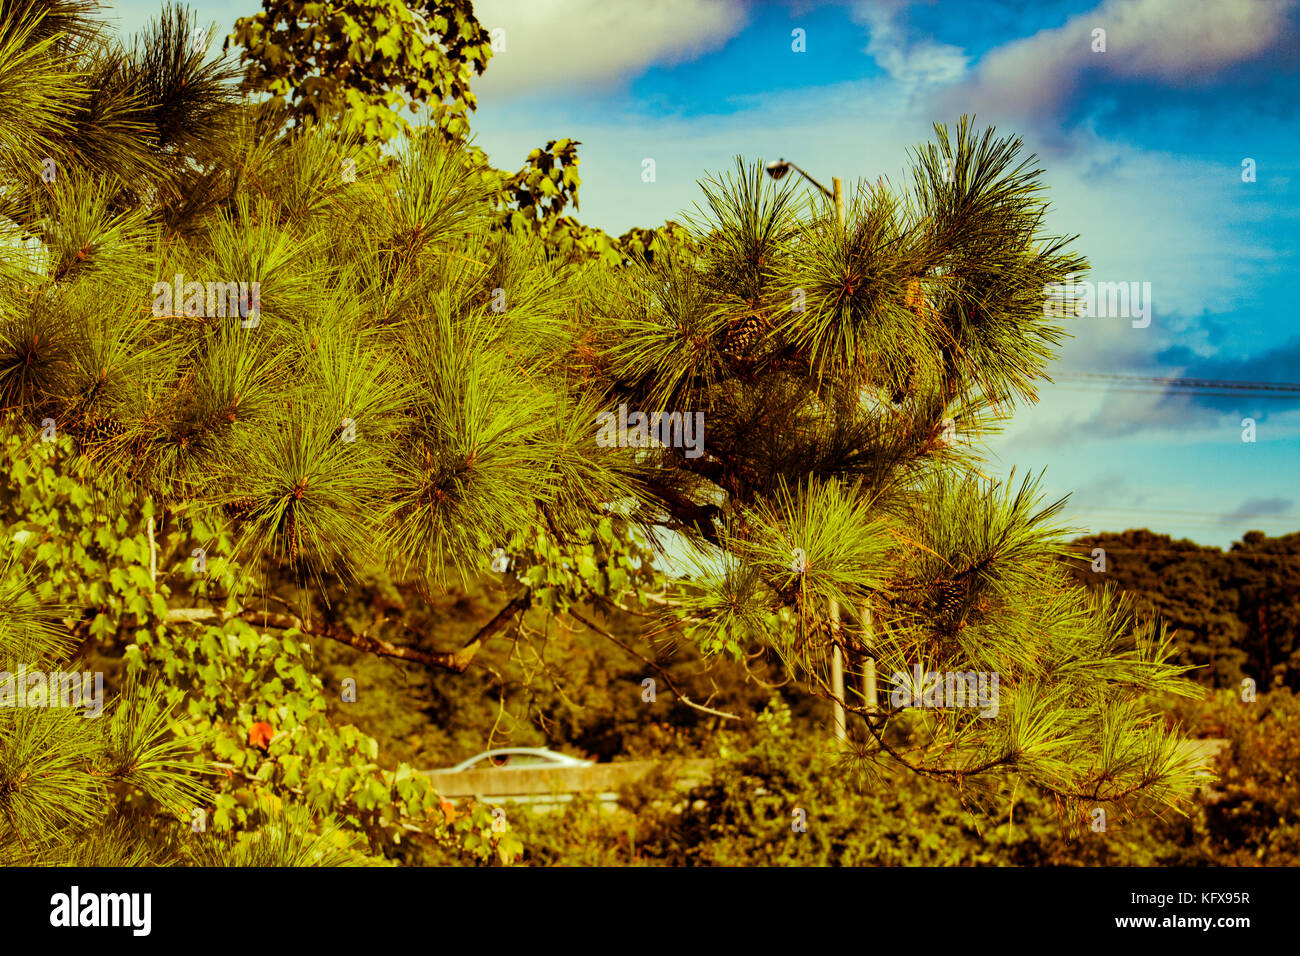 Blue skies, green trees - Stock Image